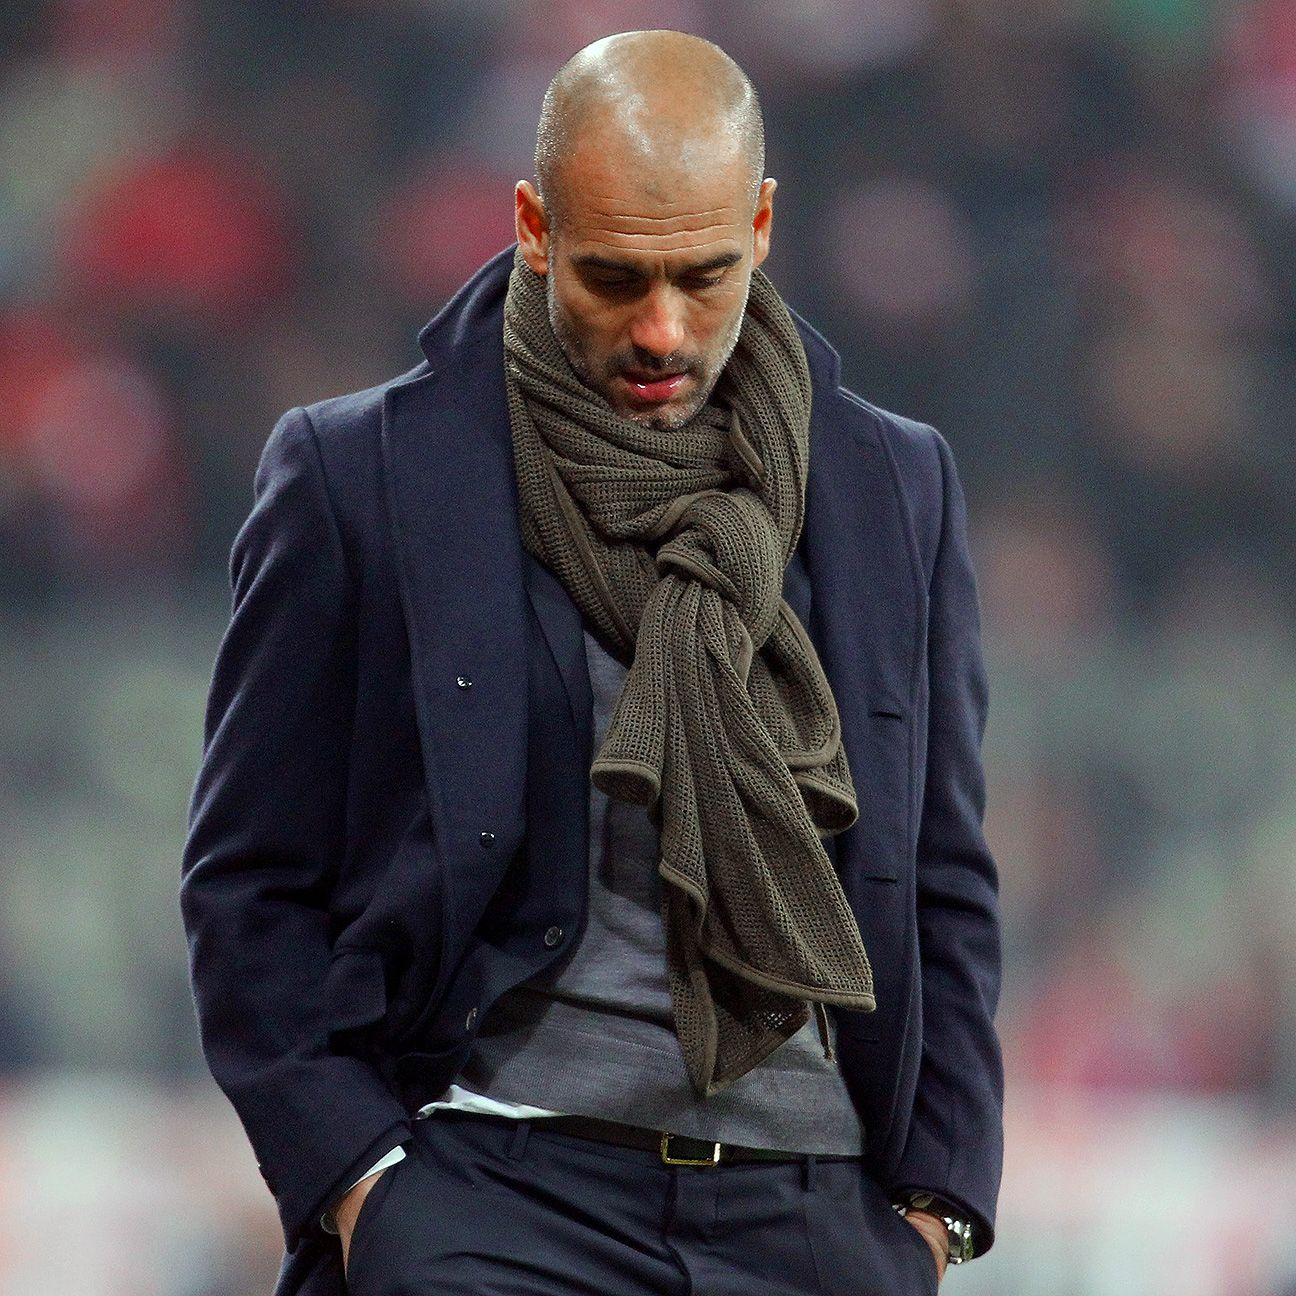 Another Champions League semifinal defeat would cast doubt on Guardiola being able to get the job done at Bayern.